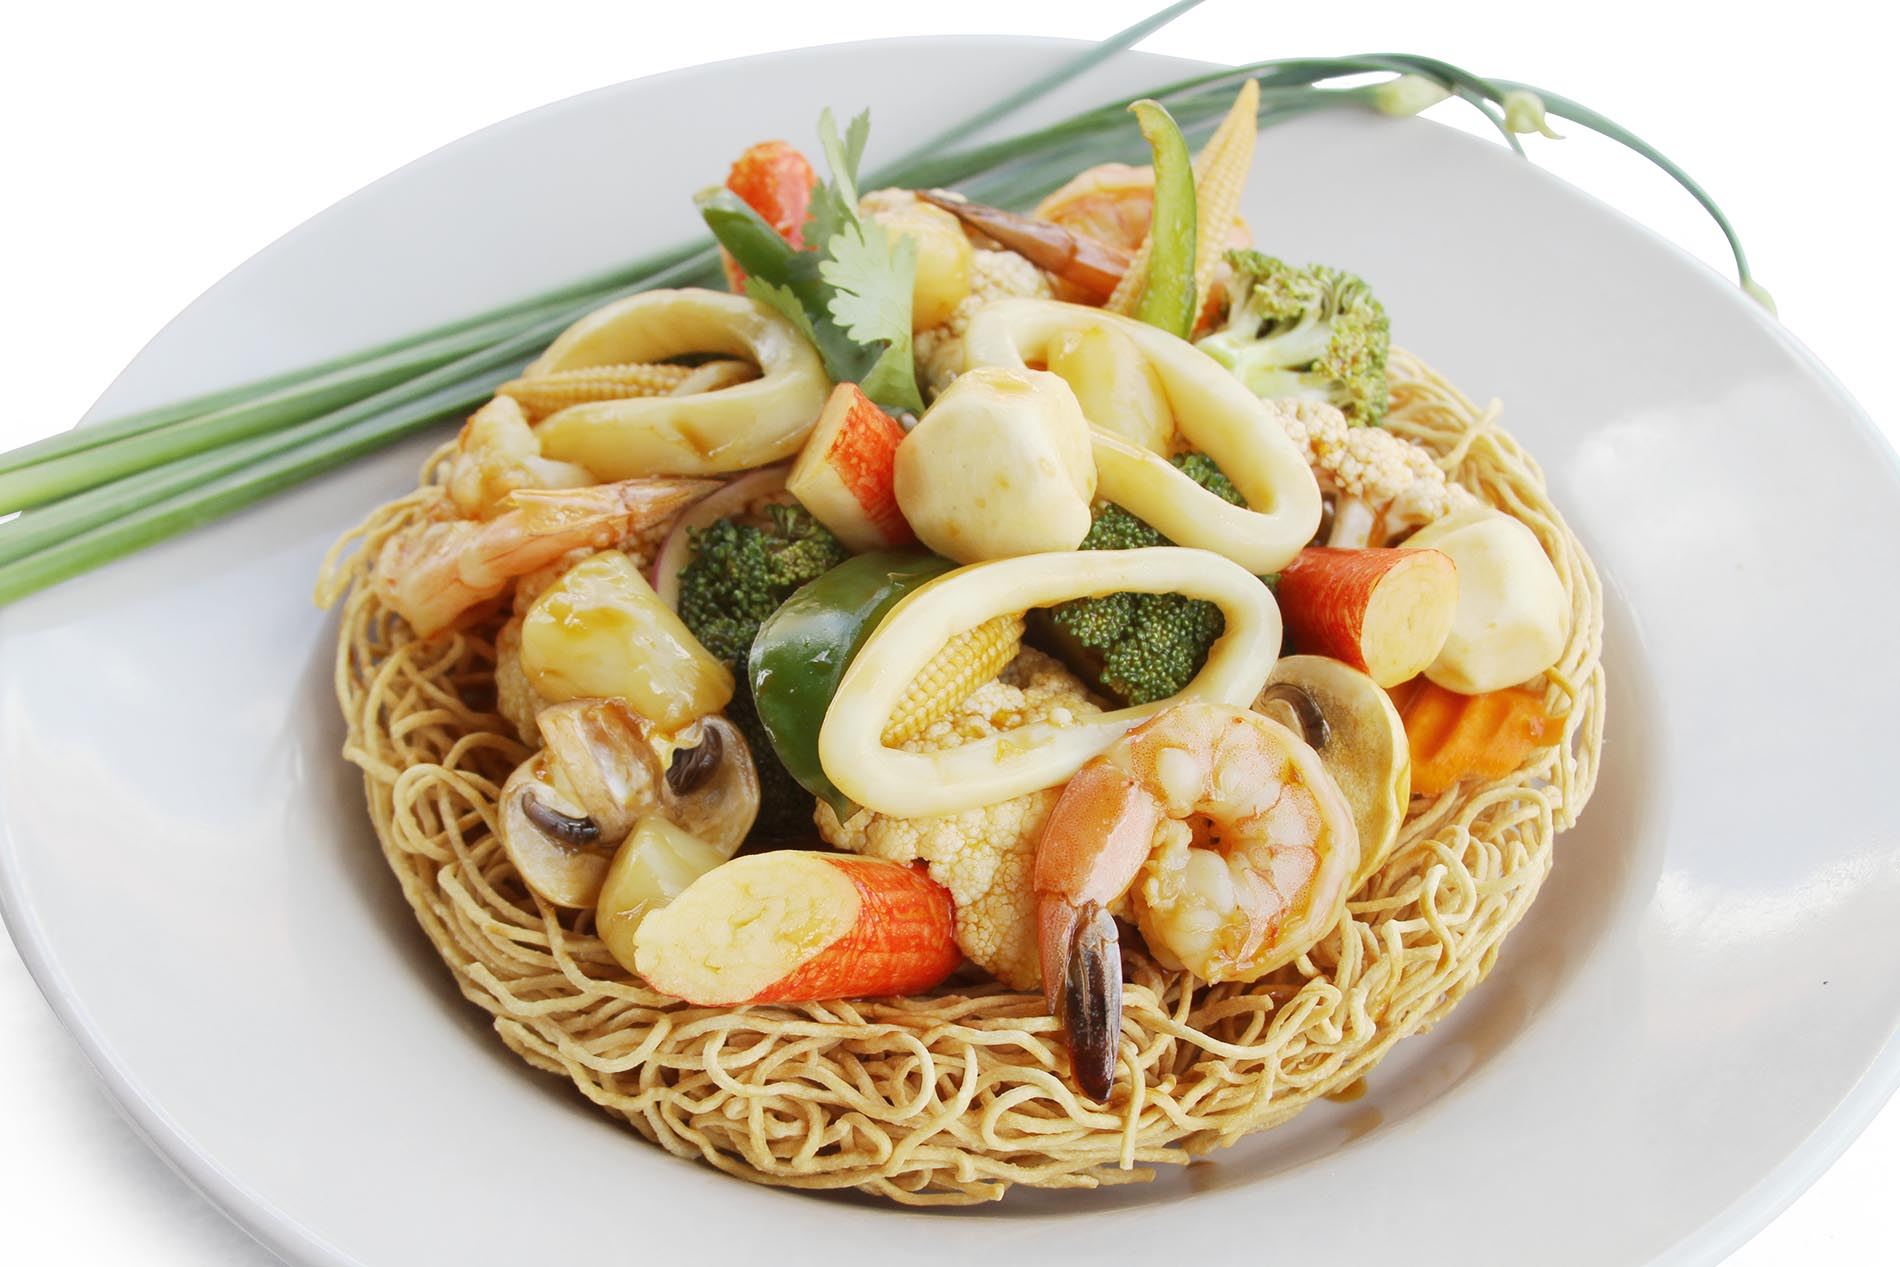 Plate of Seafood Bird's Nest Noodle